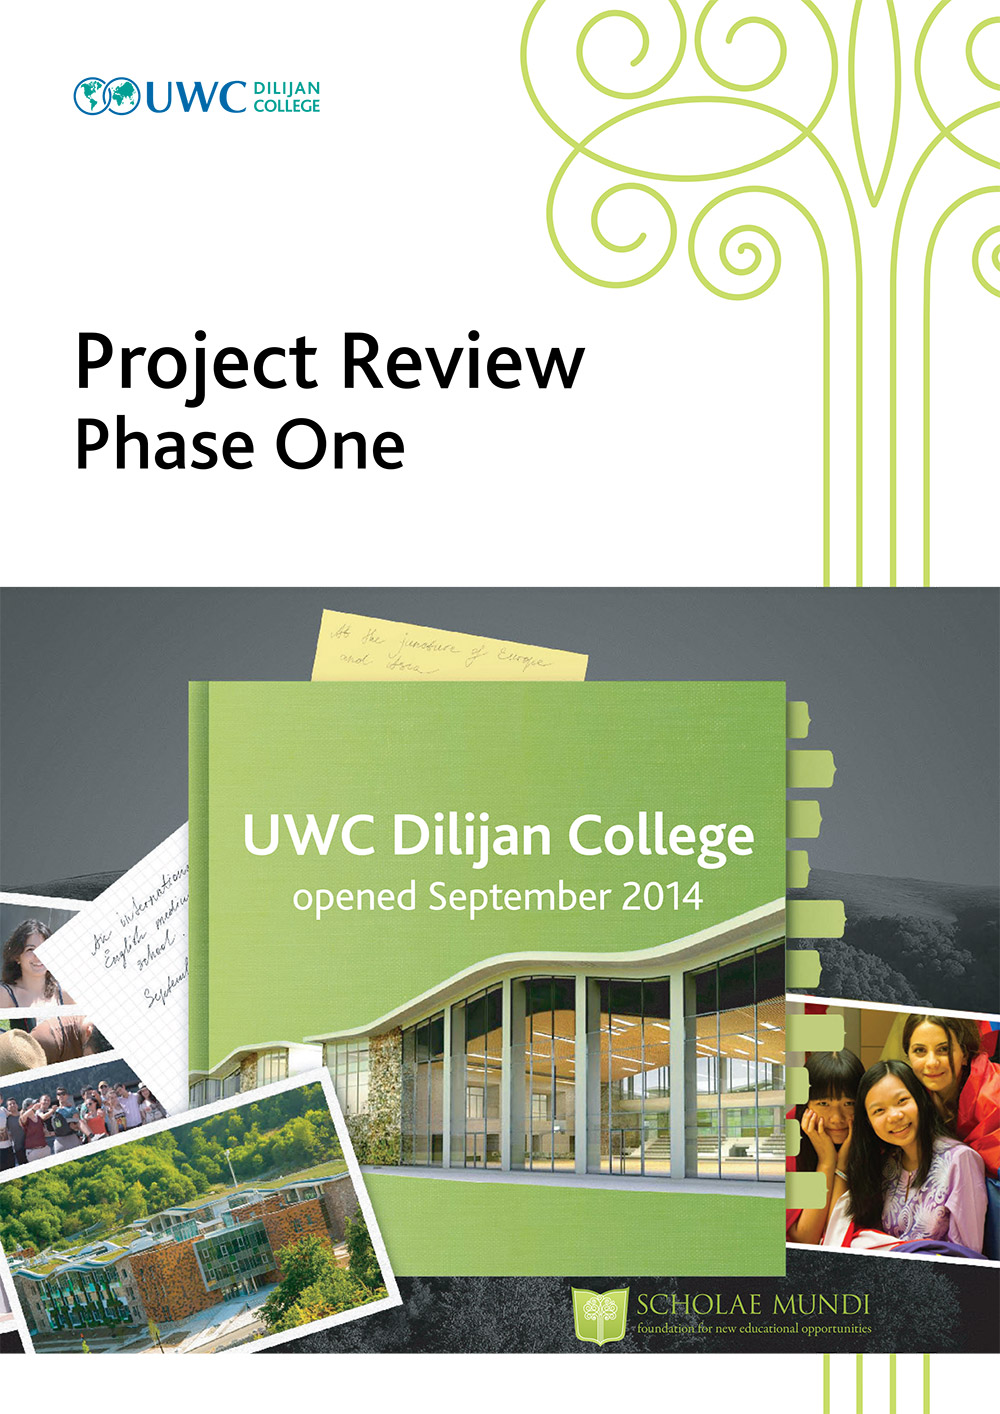 20141011 project review stage 1 eng 2014 11 27 15 01 1